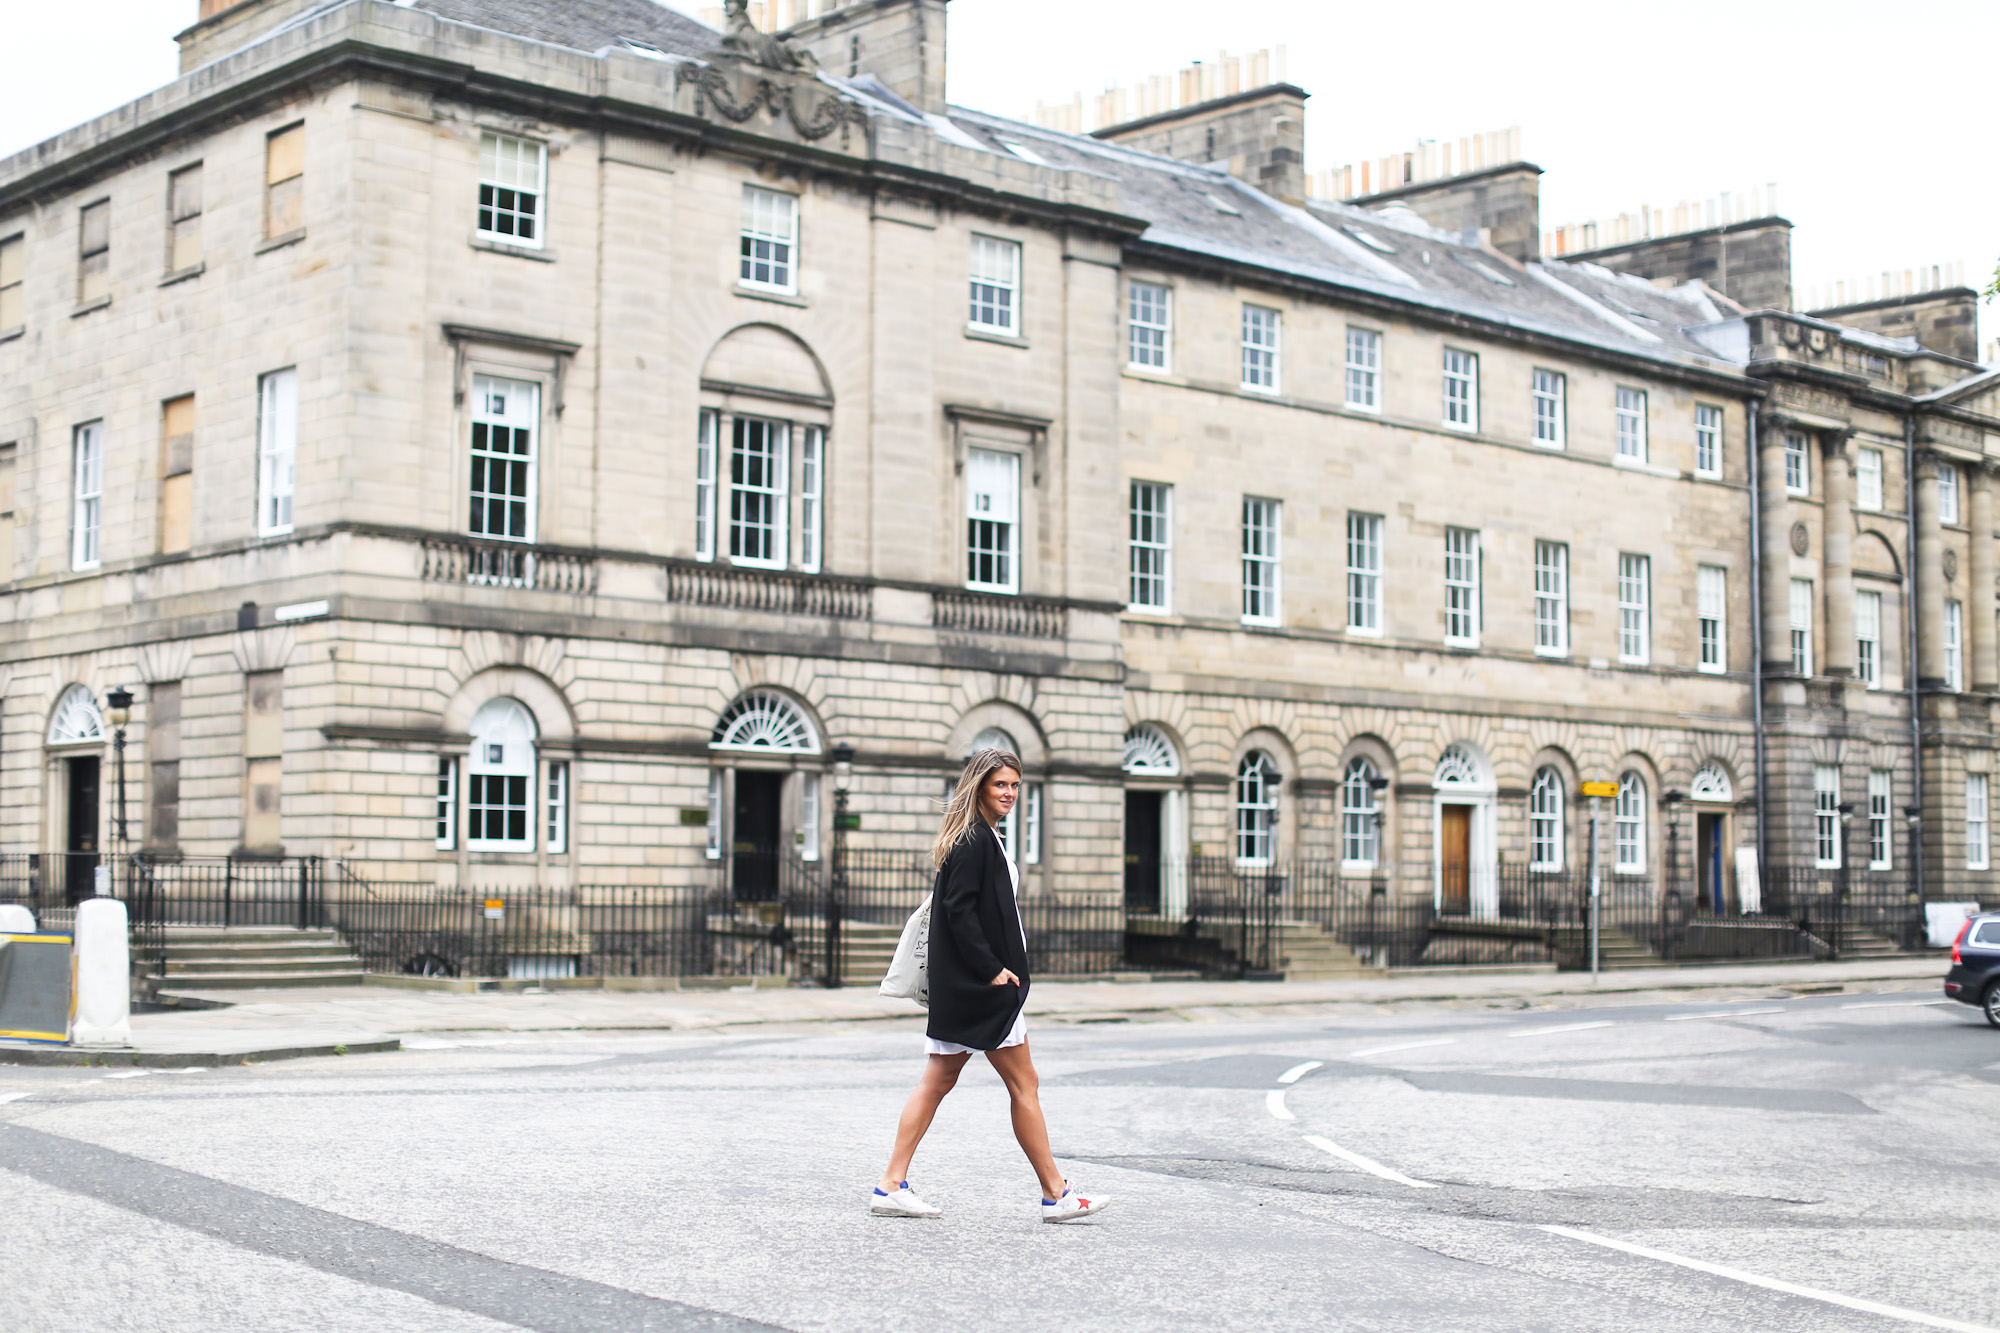 Clochet_streetstyle_zara_littlewhitedress_goldengoosedeluxesneakers_edinburgh-6